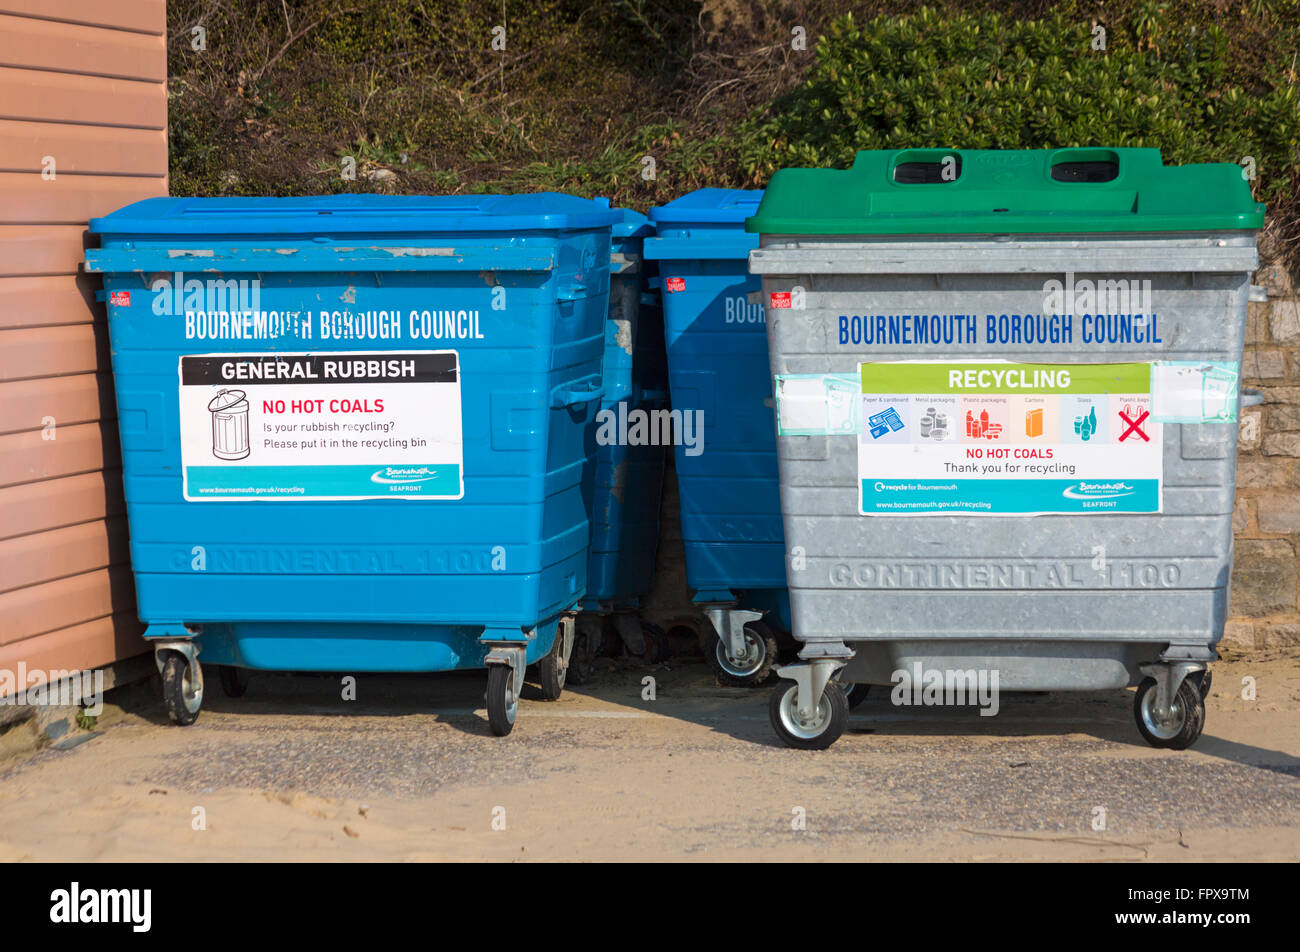 Bournemouth Borough Council recycling and general rubbish bins on promenade by beach huts at Bournemouth in March - Stock Image